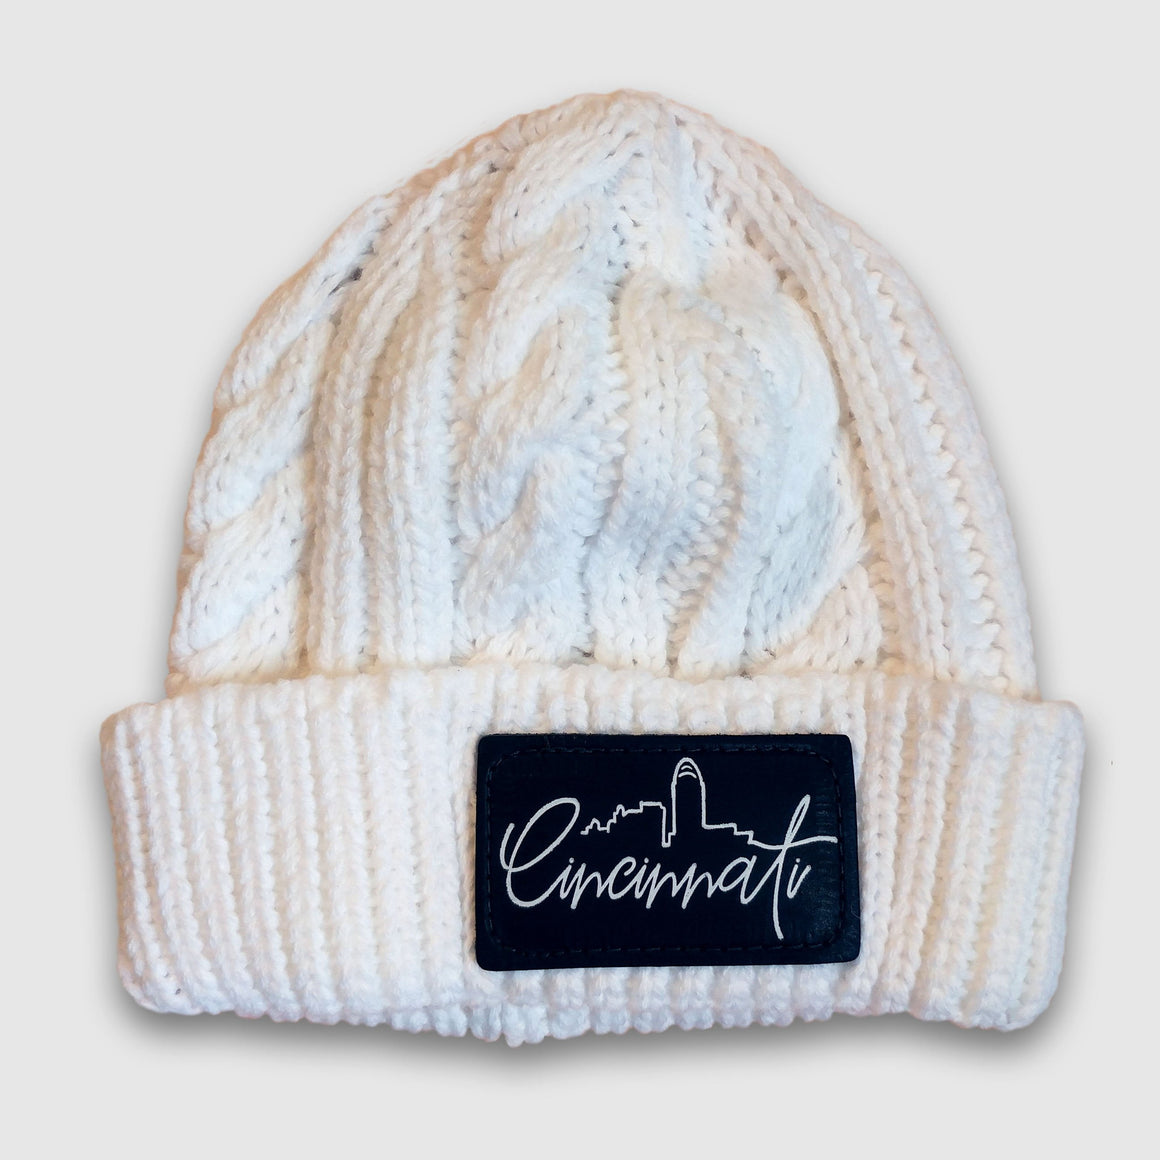 Cincinnati Patch Knit White Beanie - Cincy Shirts